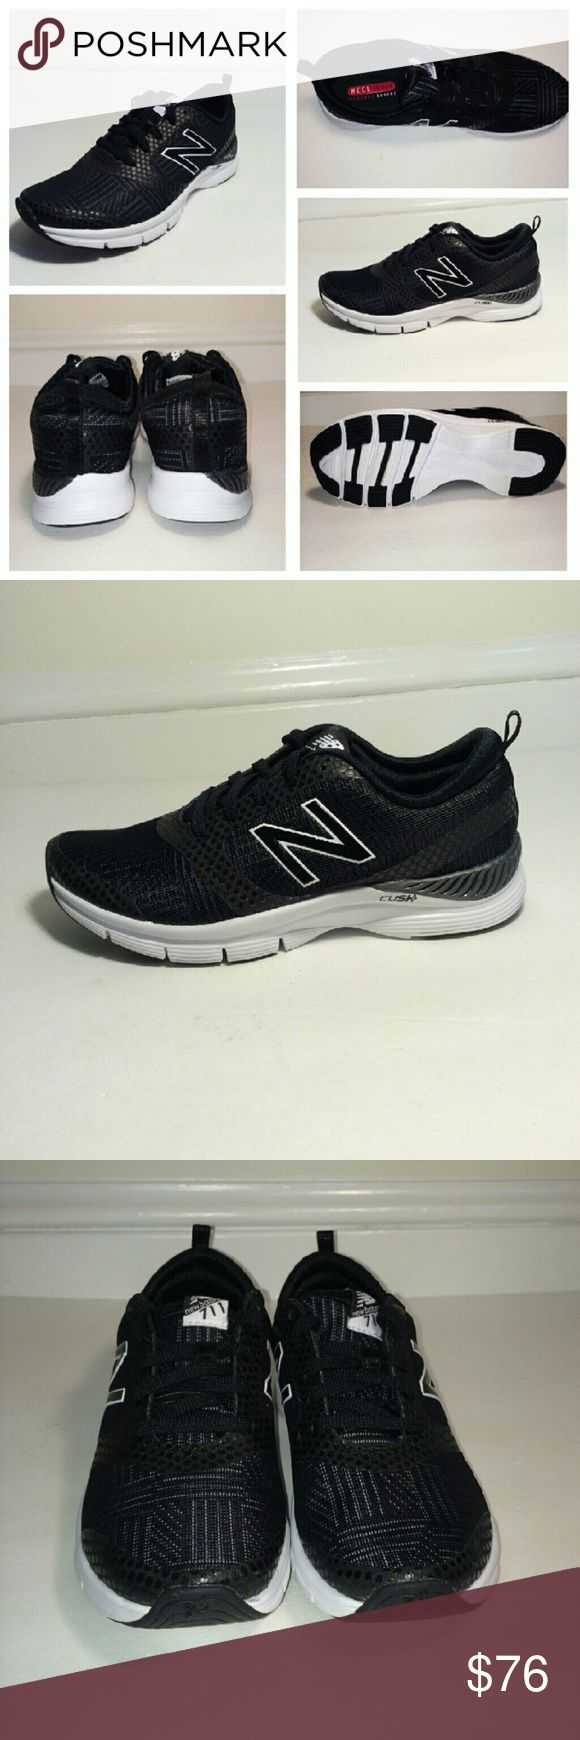 new balance sneakers for sale